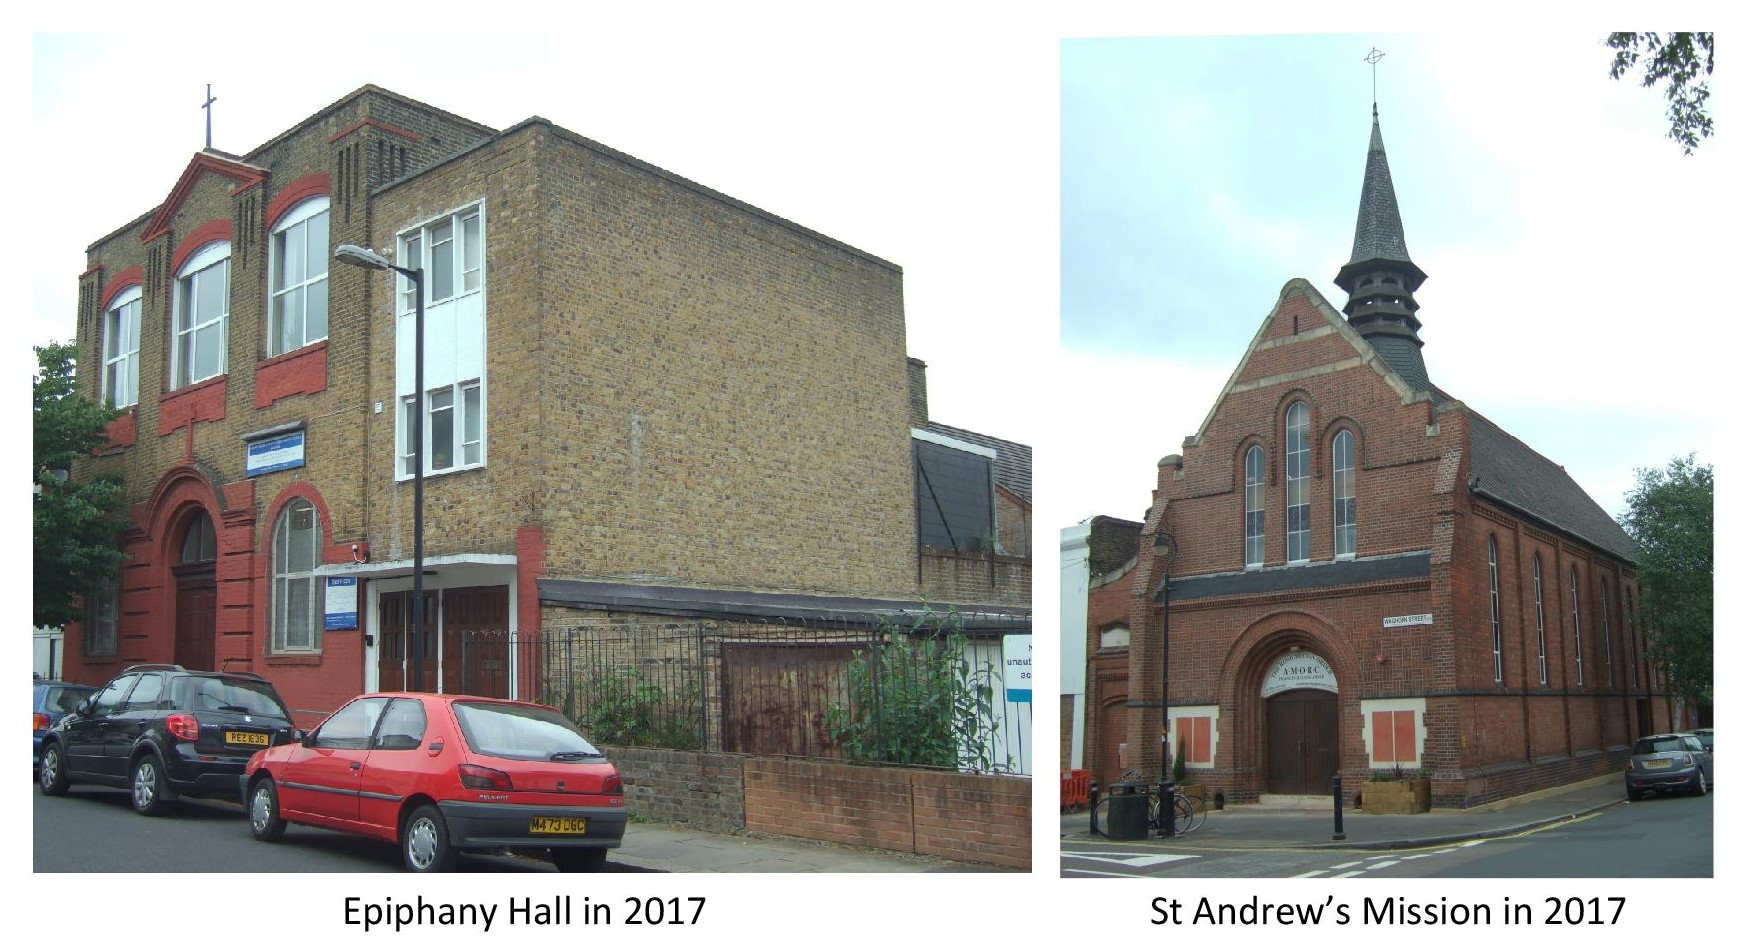 St John's Missions - Epiphany Hall in 2017 and St Andrew's Mission in 2017